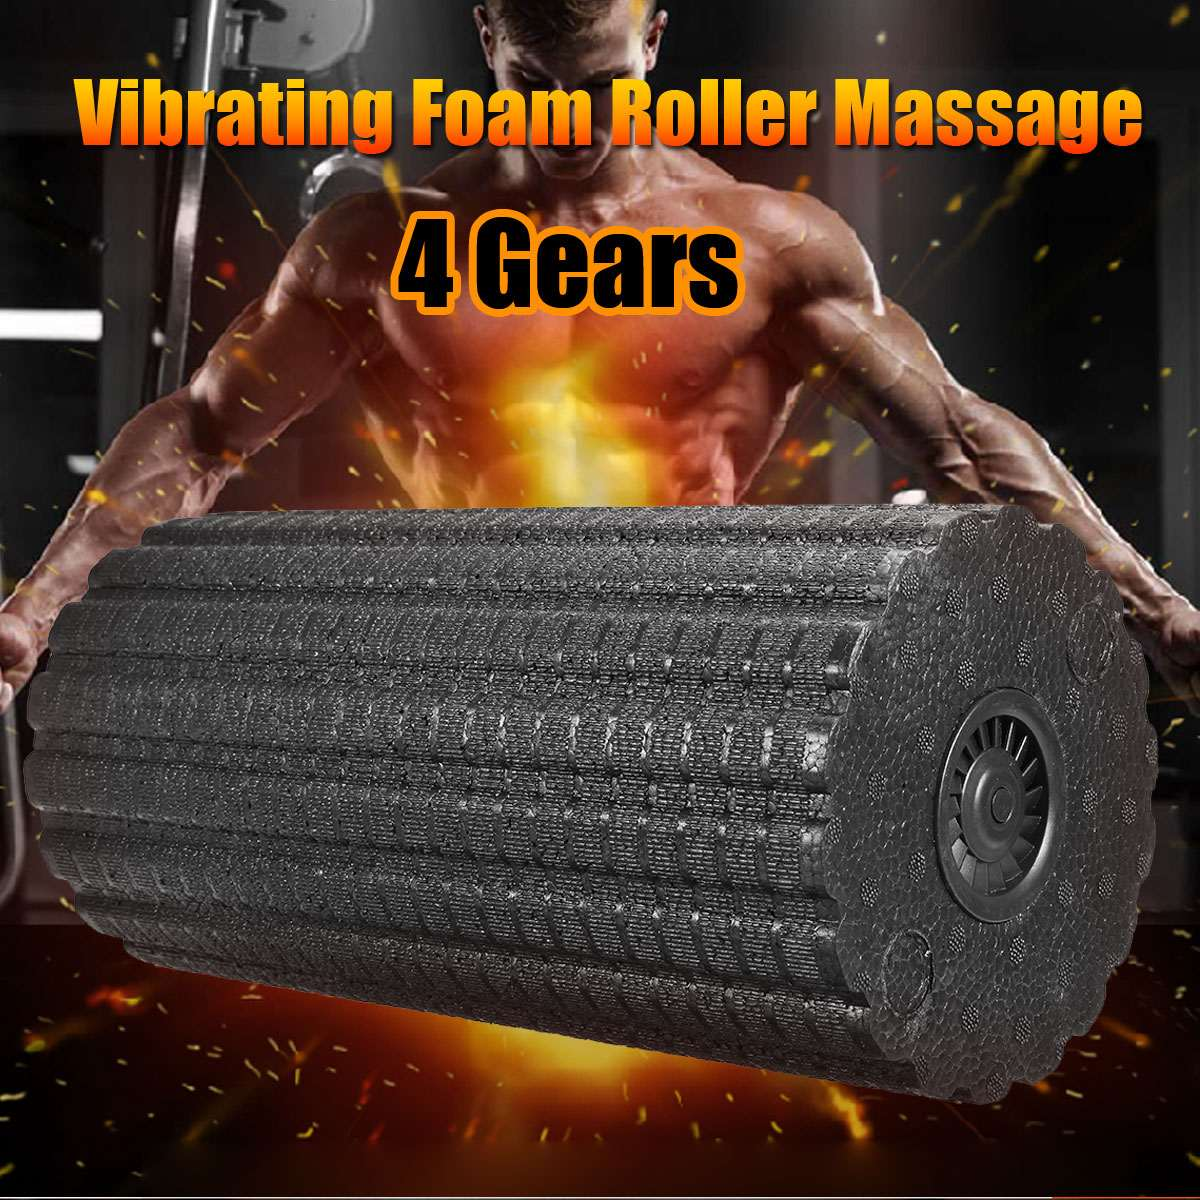 Kifit Yoga Foam Roller Massage Electric Vibrator Relaxing Foam Roller Massage Electric For Fitness Roller Body Slimming 4 Speed 30cm 15cm electric vibration eva foam roller floating point fitness massage roller 3 speed adjustable for physical therapy